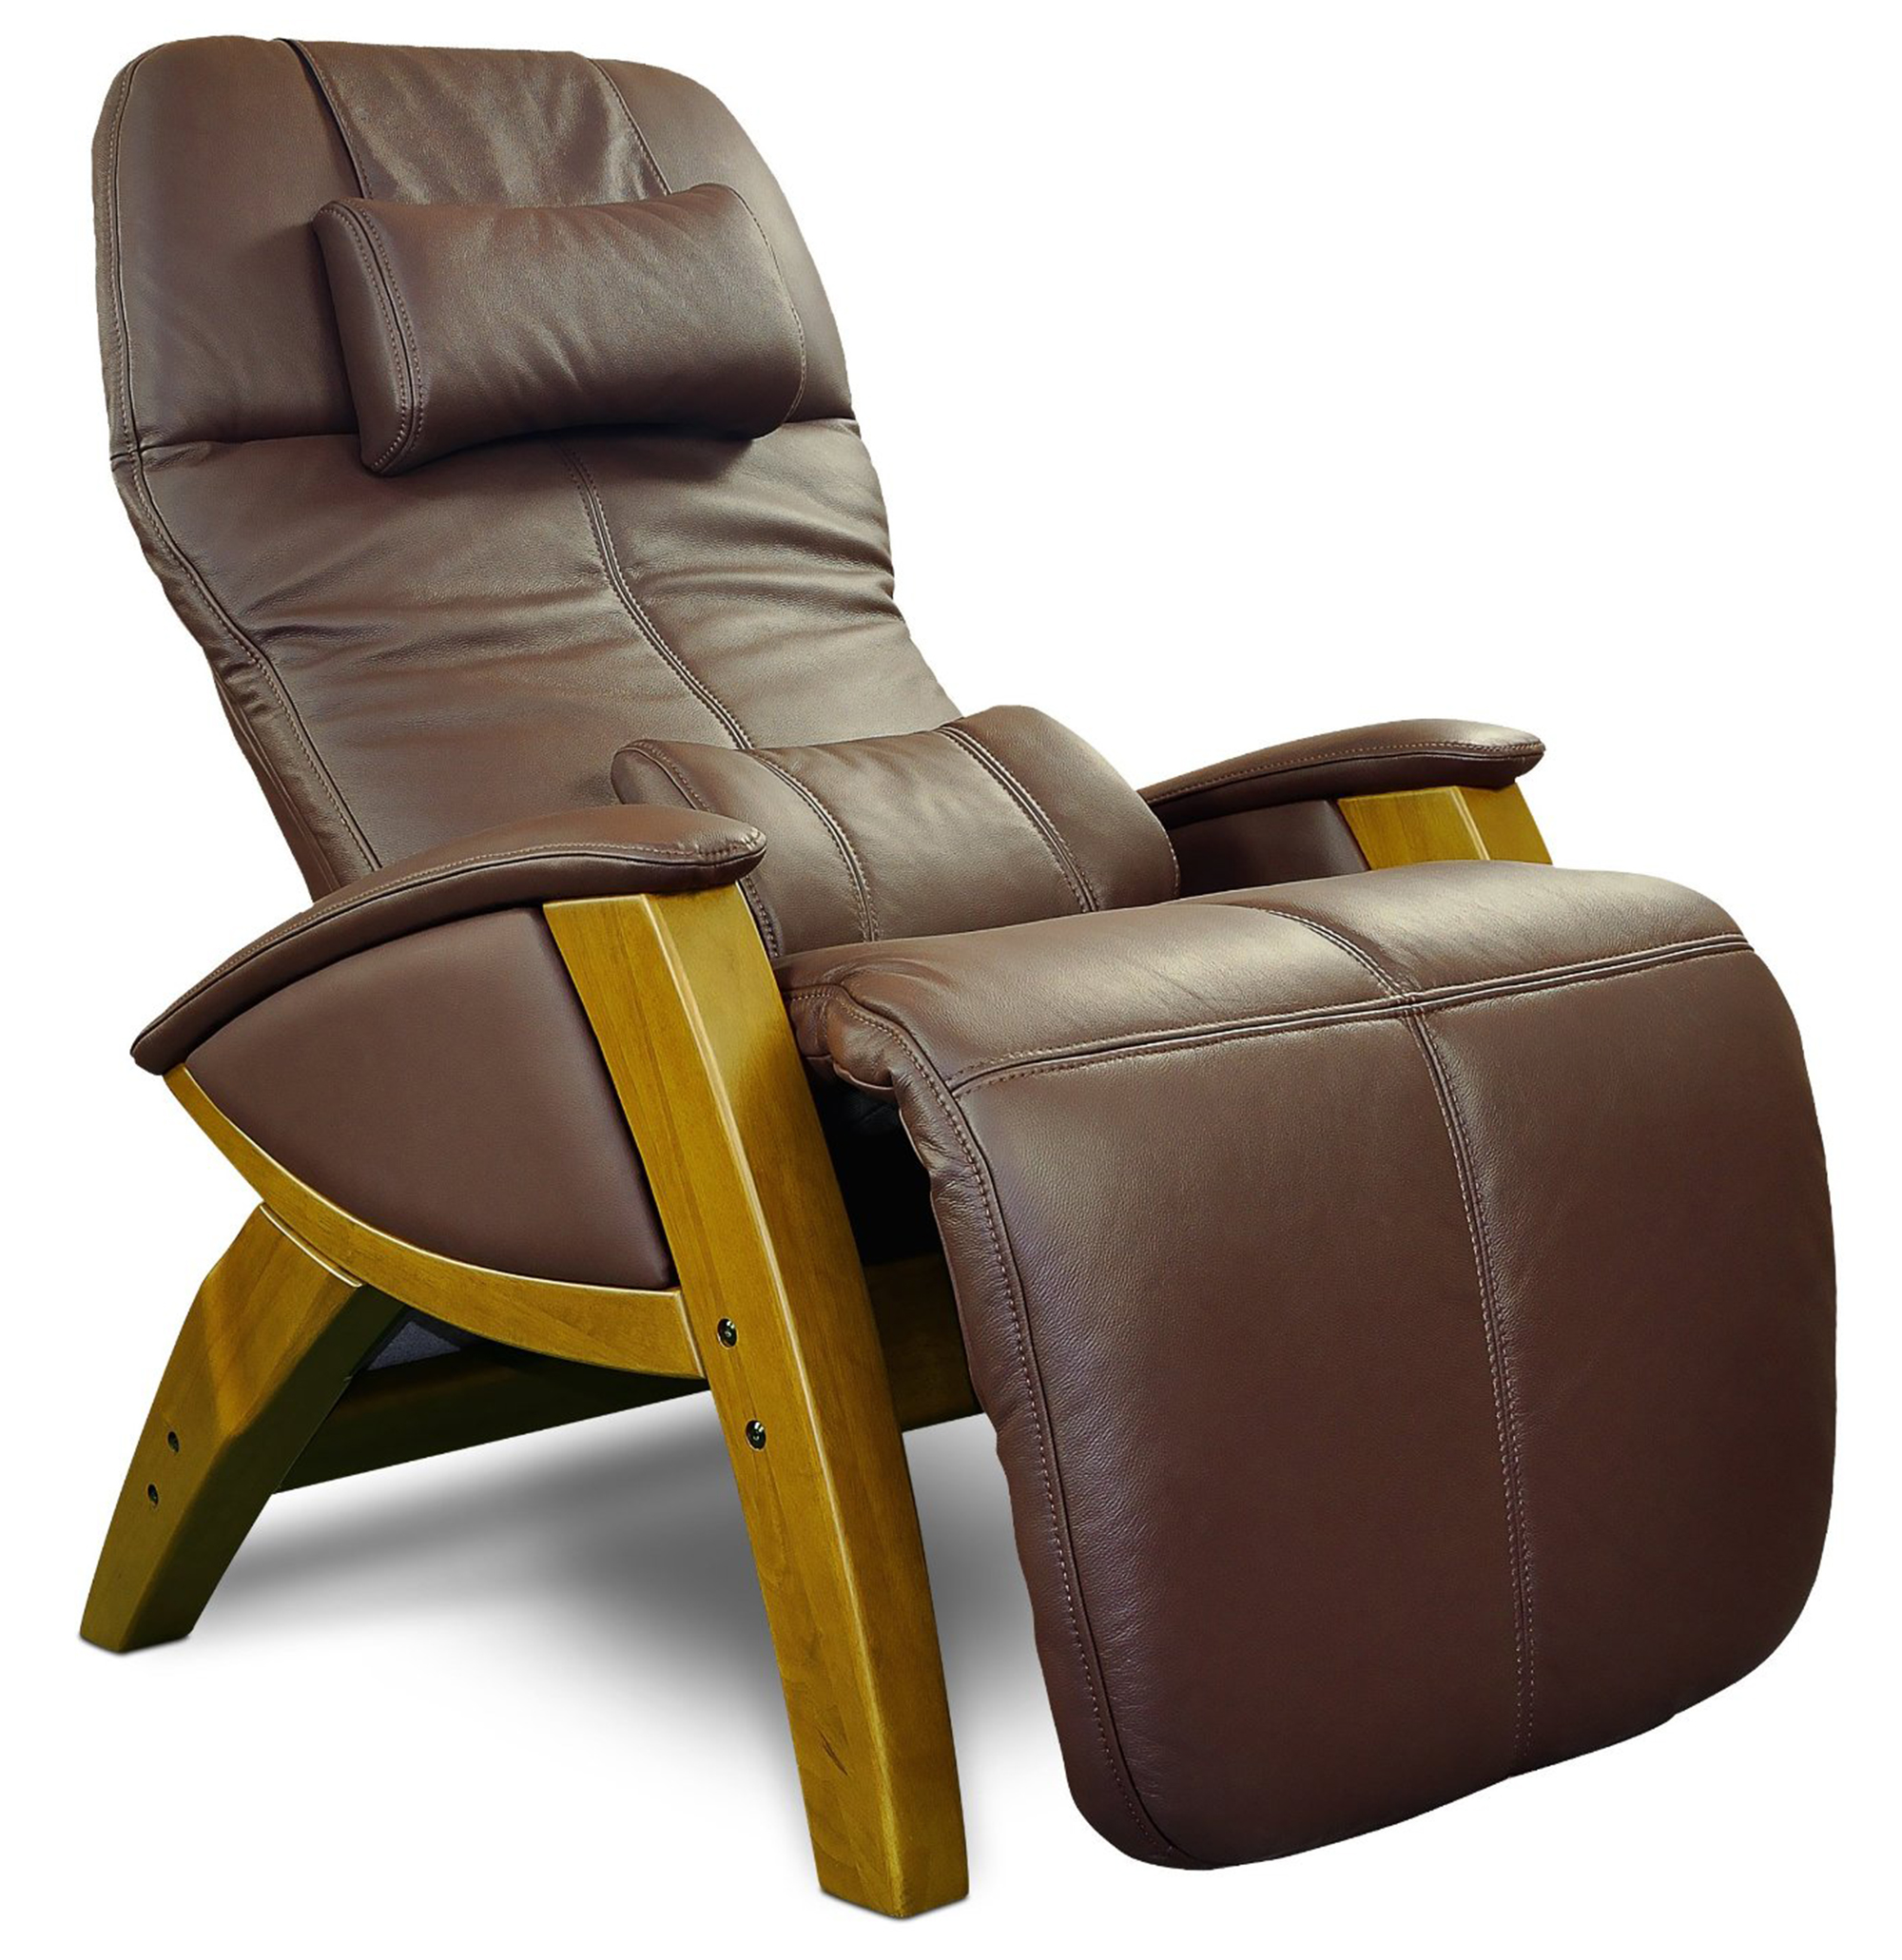 Svago SV410 Benessere Chair Chocolate Leather Zero Gravity Recliner  sc 1 st  Vitalityweb.com & Svago SV410 Benessere Zero Gravity Leather Recliner Chair islam-shia.org